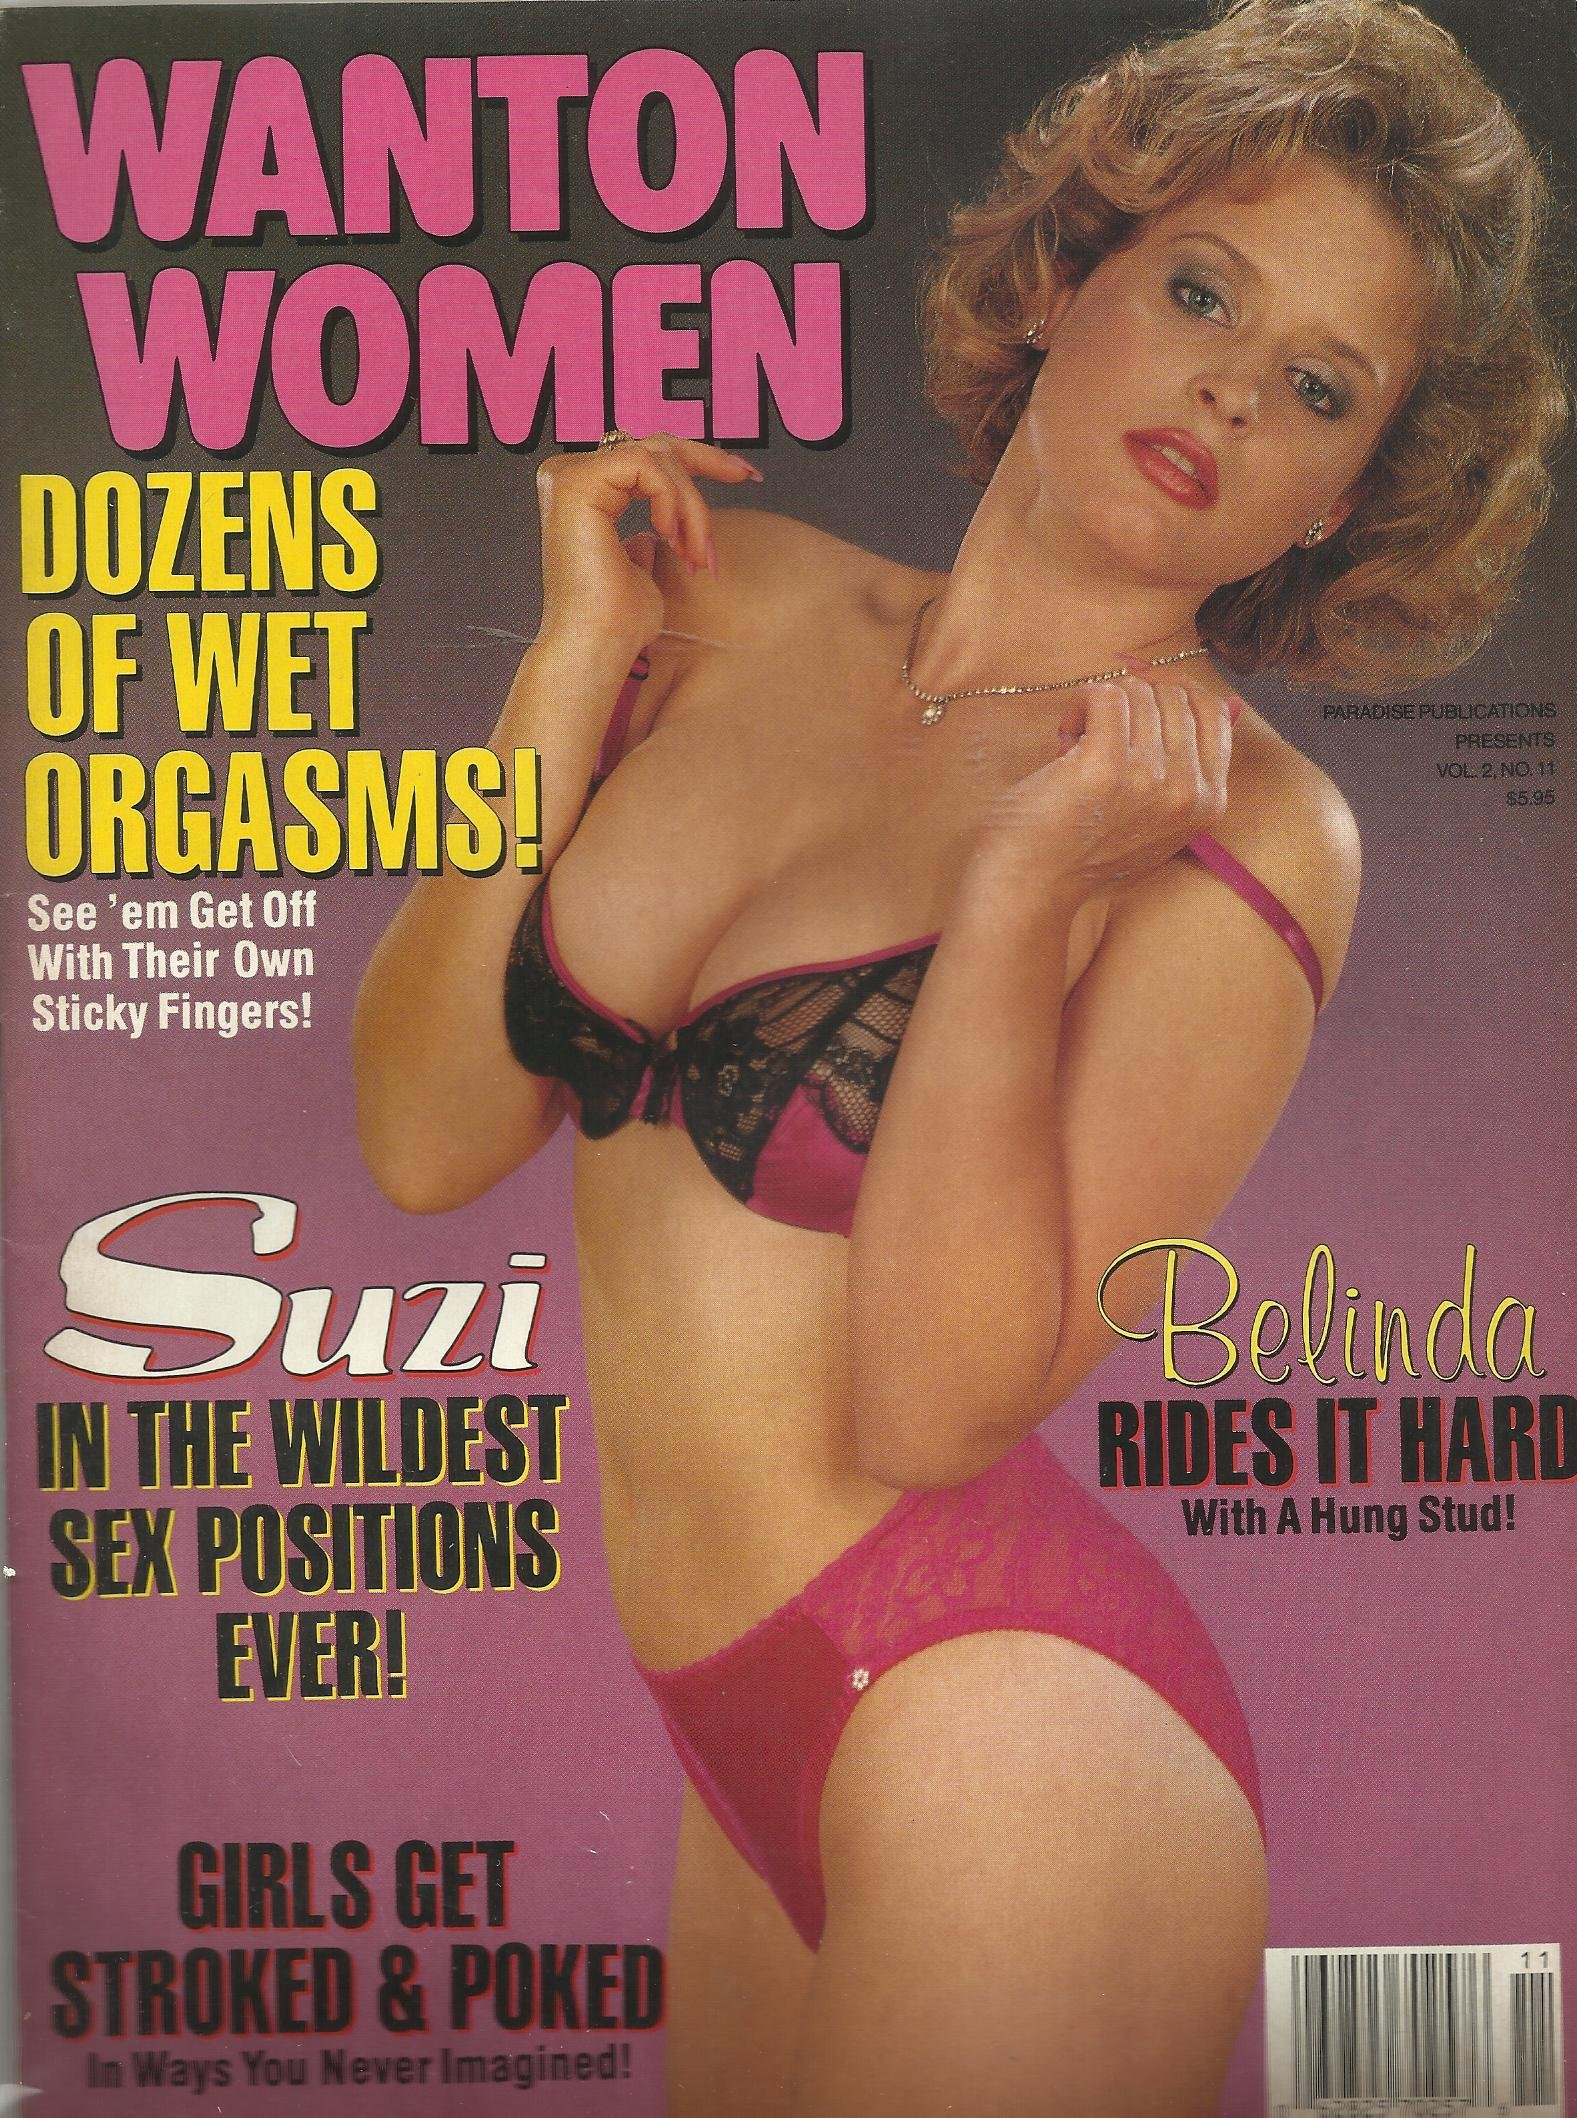 11 Suzi in the Wildest Sex Positions Ever! Belinda Rides It Hard with a  Hung Stud! Single Issue Magazine – 1988